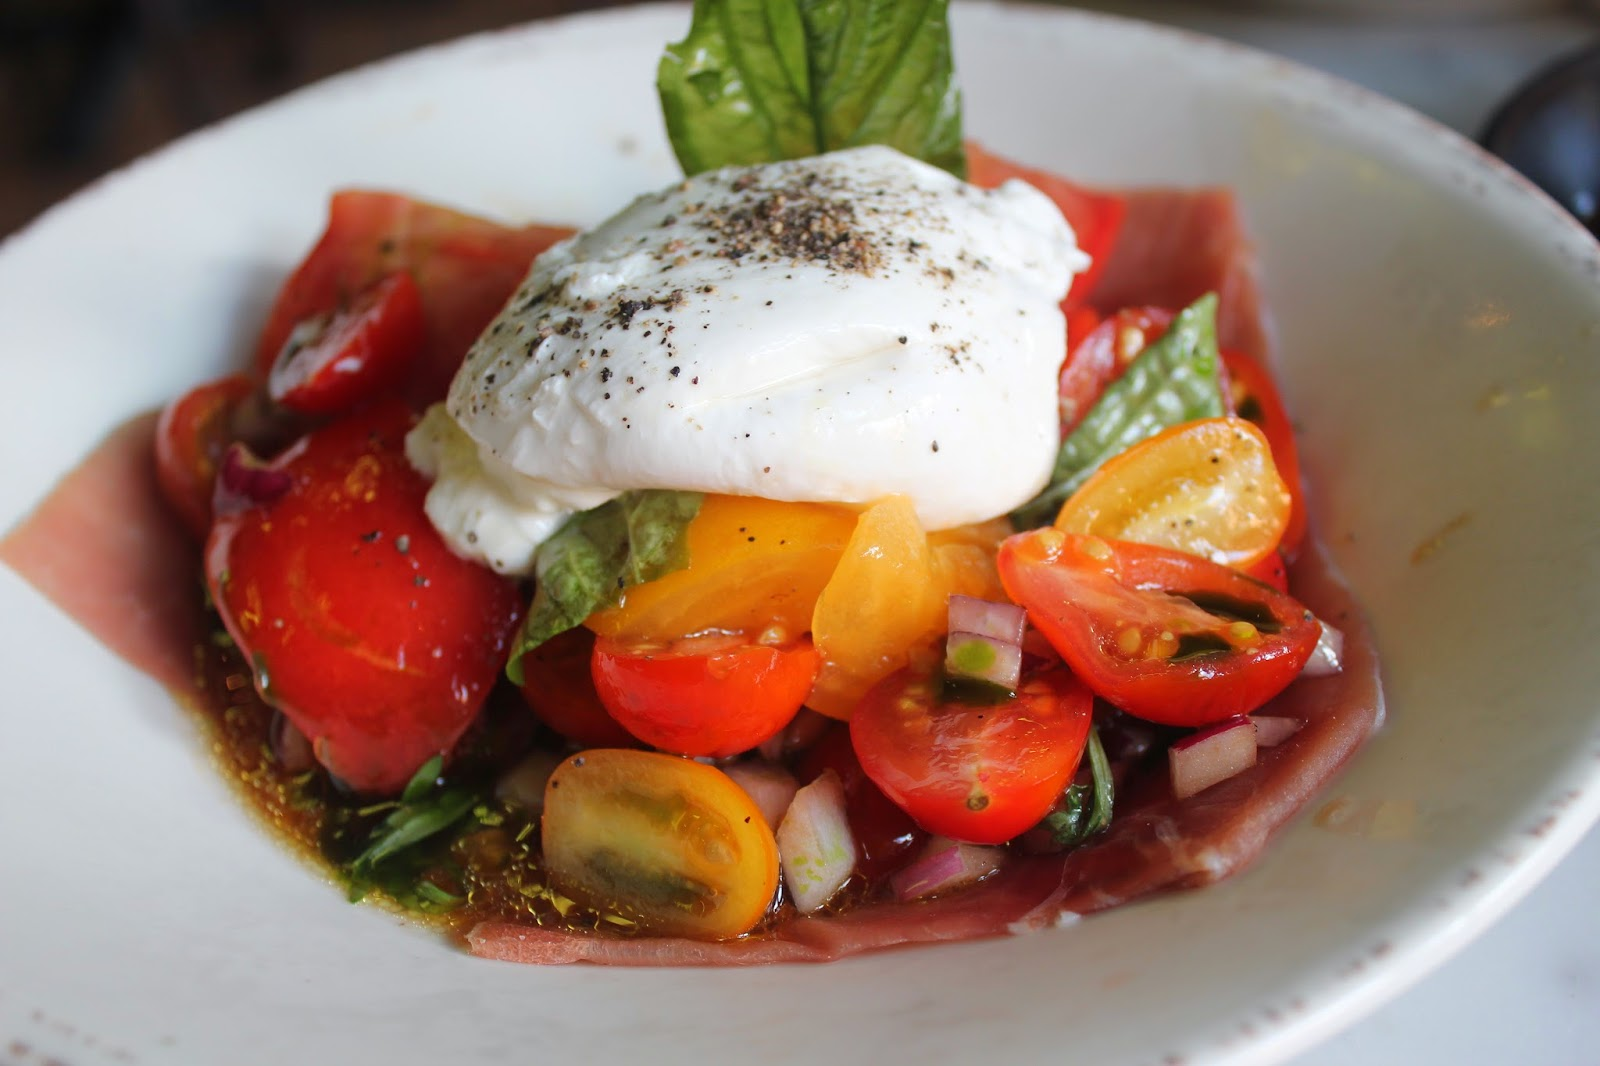 Burrata and tomatoes at Pastoral, Boston, Mass.